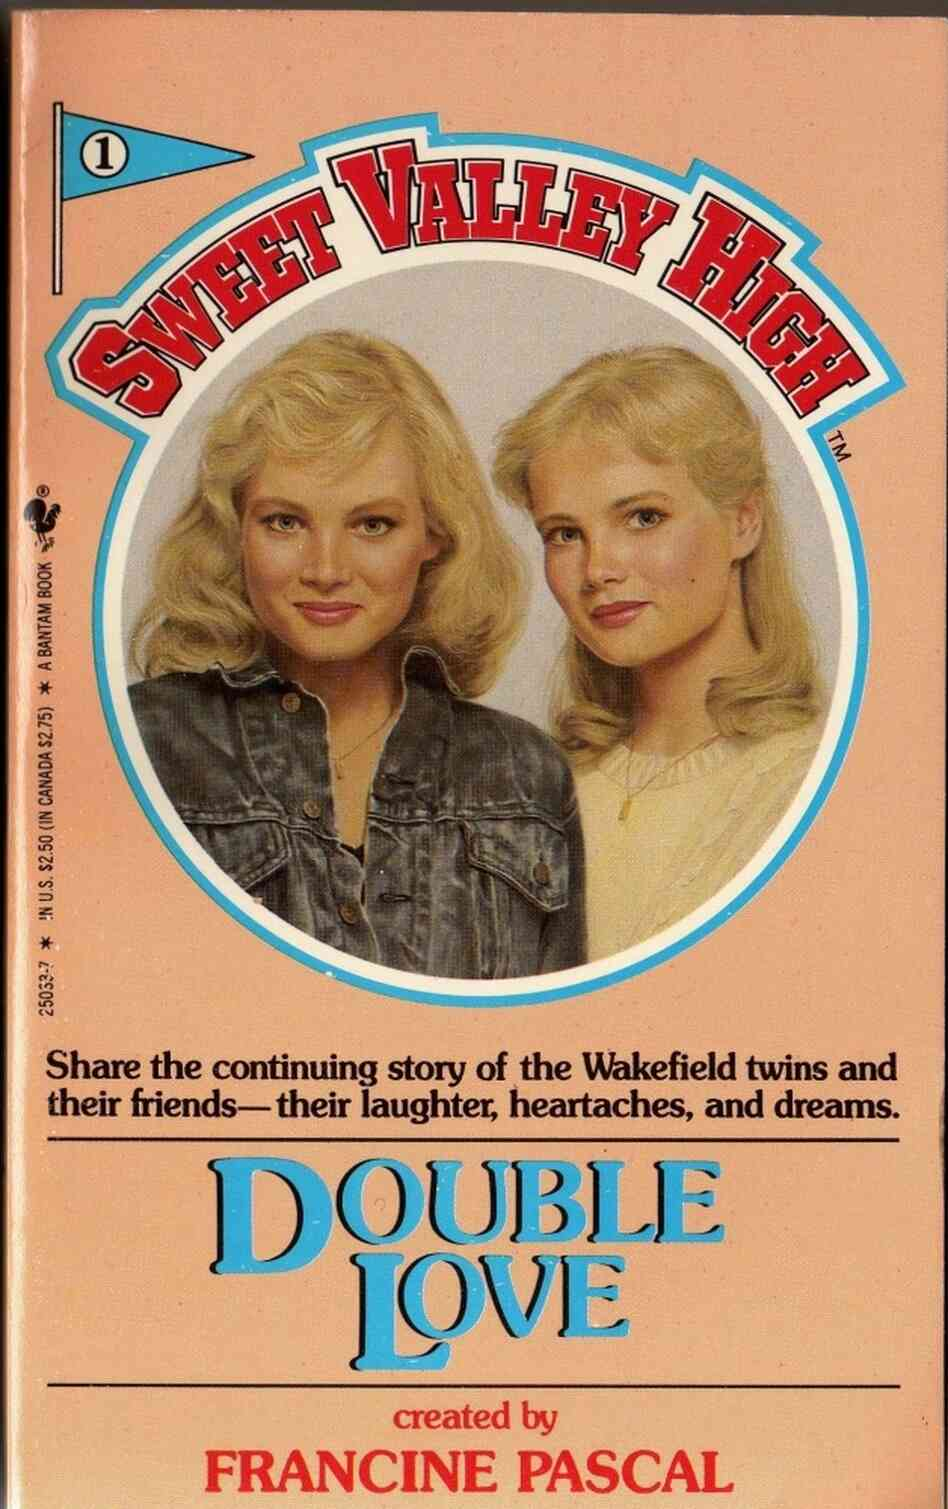 A book cover from the old Sweet Valley High series featuring stylish Jessica and studious Elizabeth. Double Love was the first of over 150 books in the series, introducing the twins — and love interest Todd Wilkins.